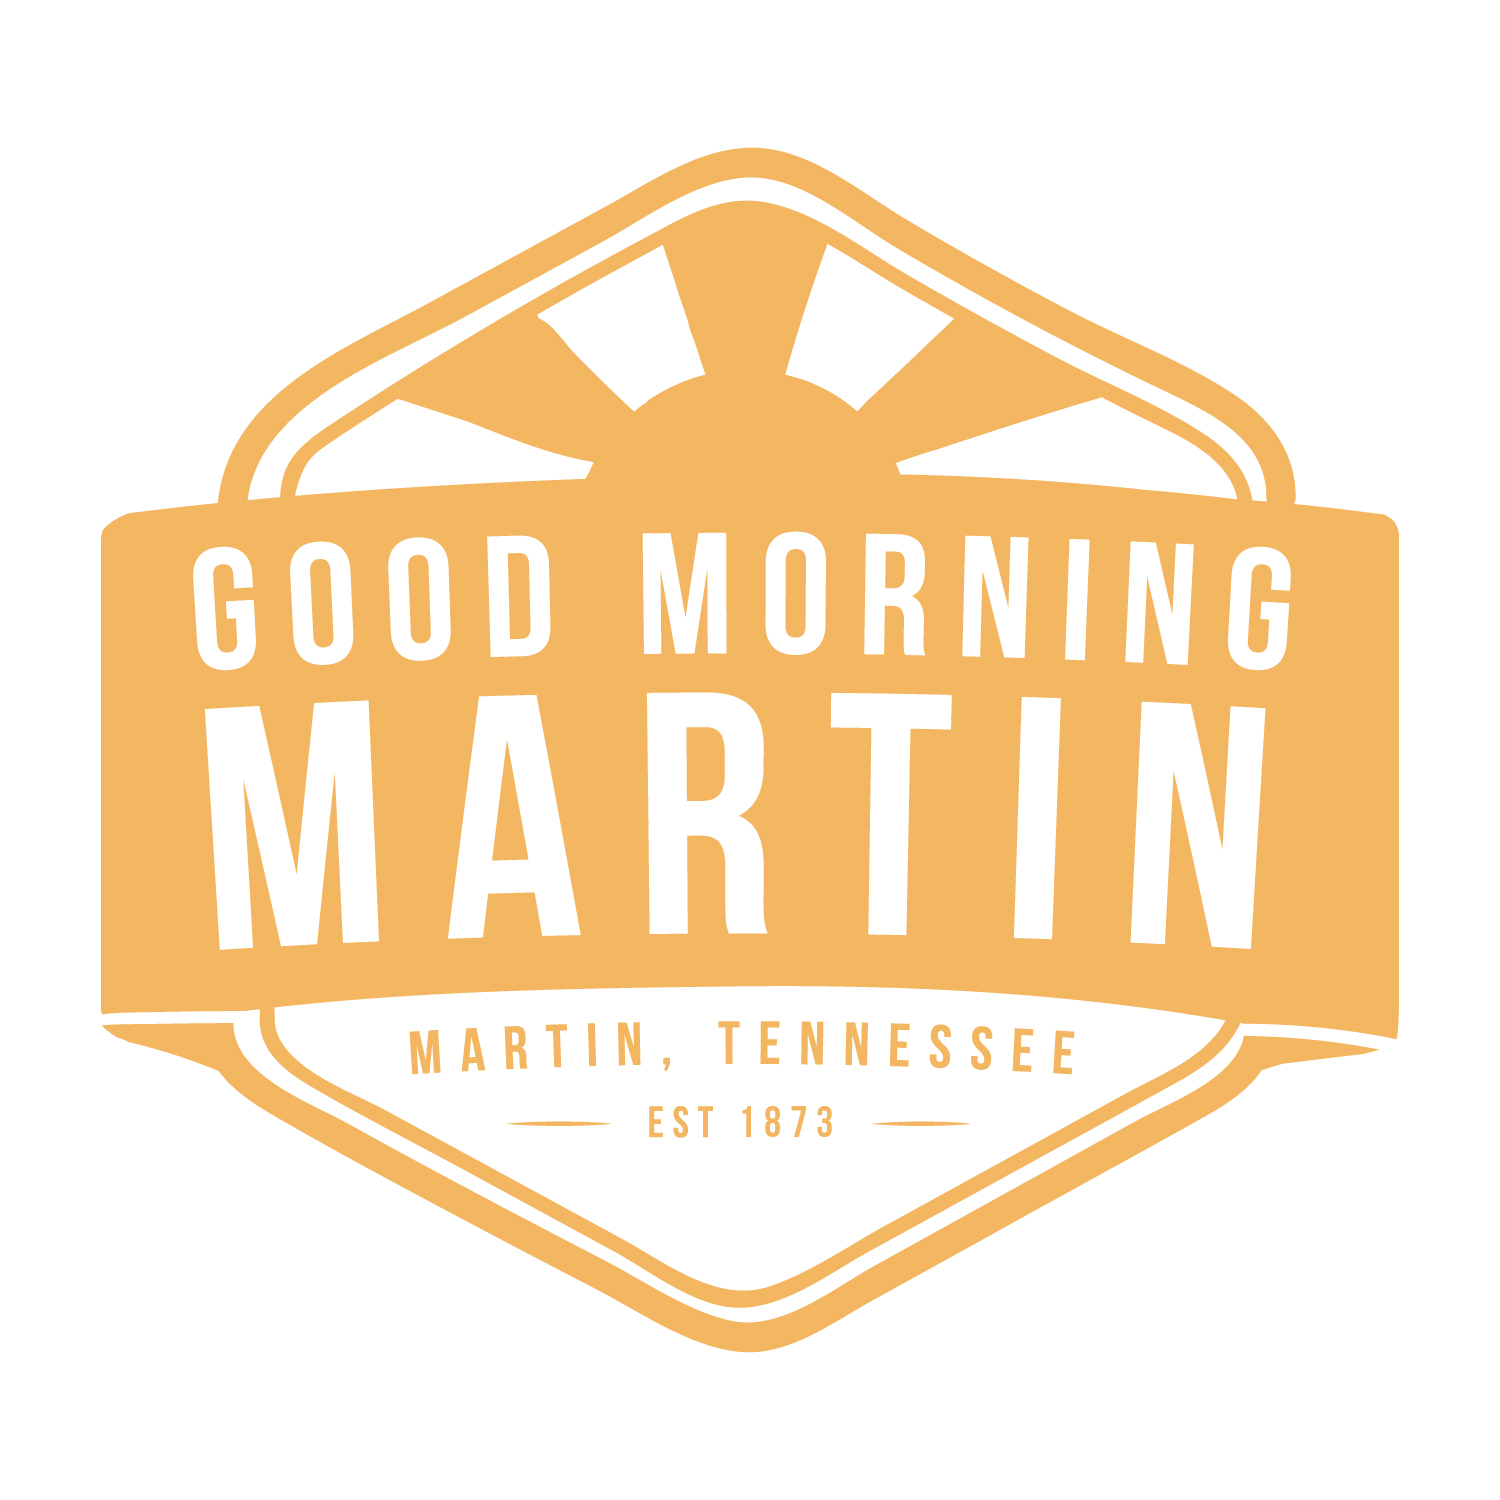 good morning martin.jpg